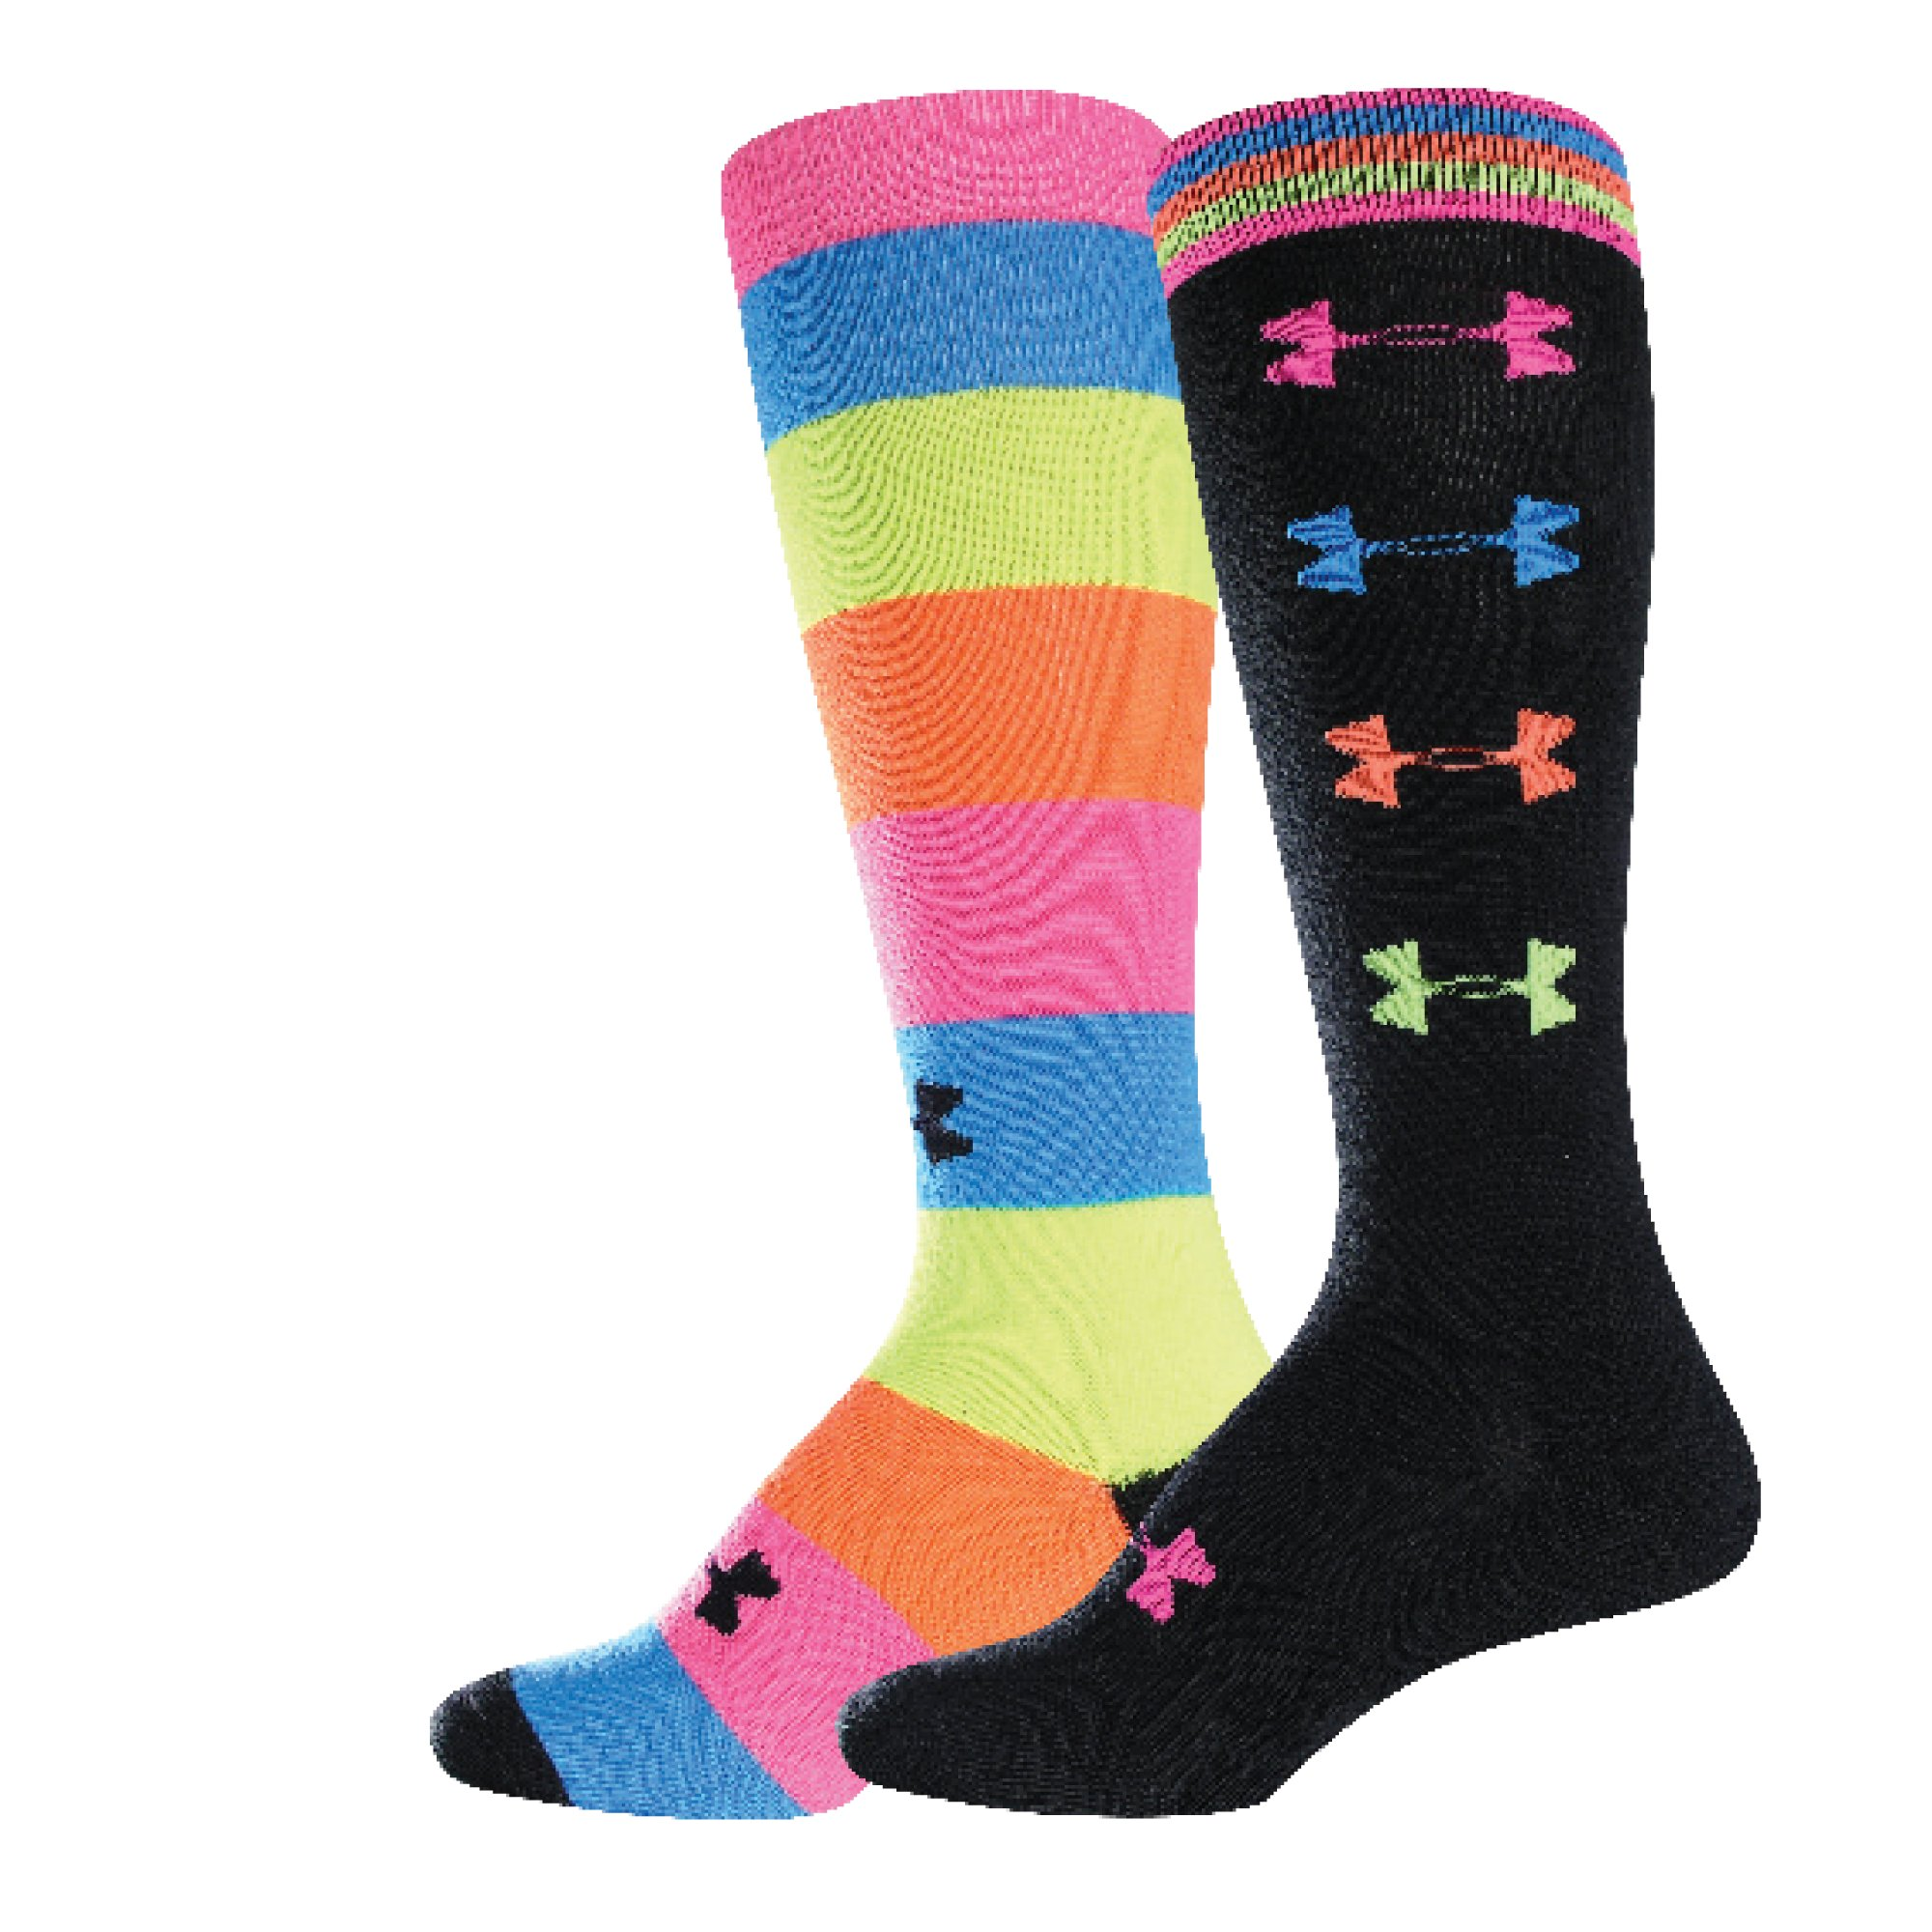 Women's Recur OTC Socks, Black